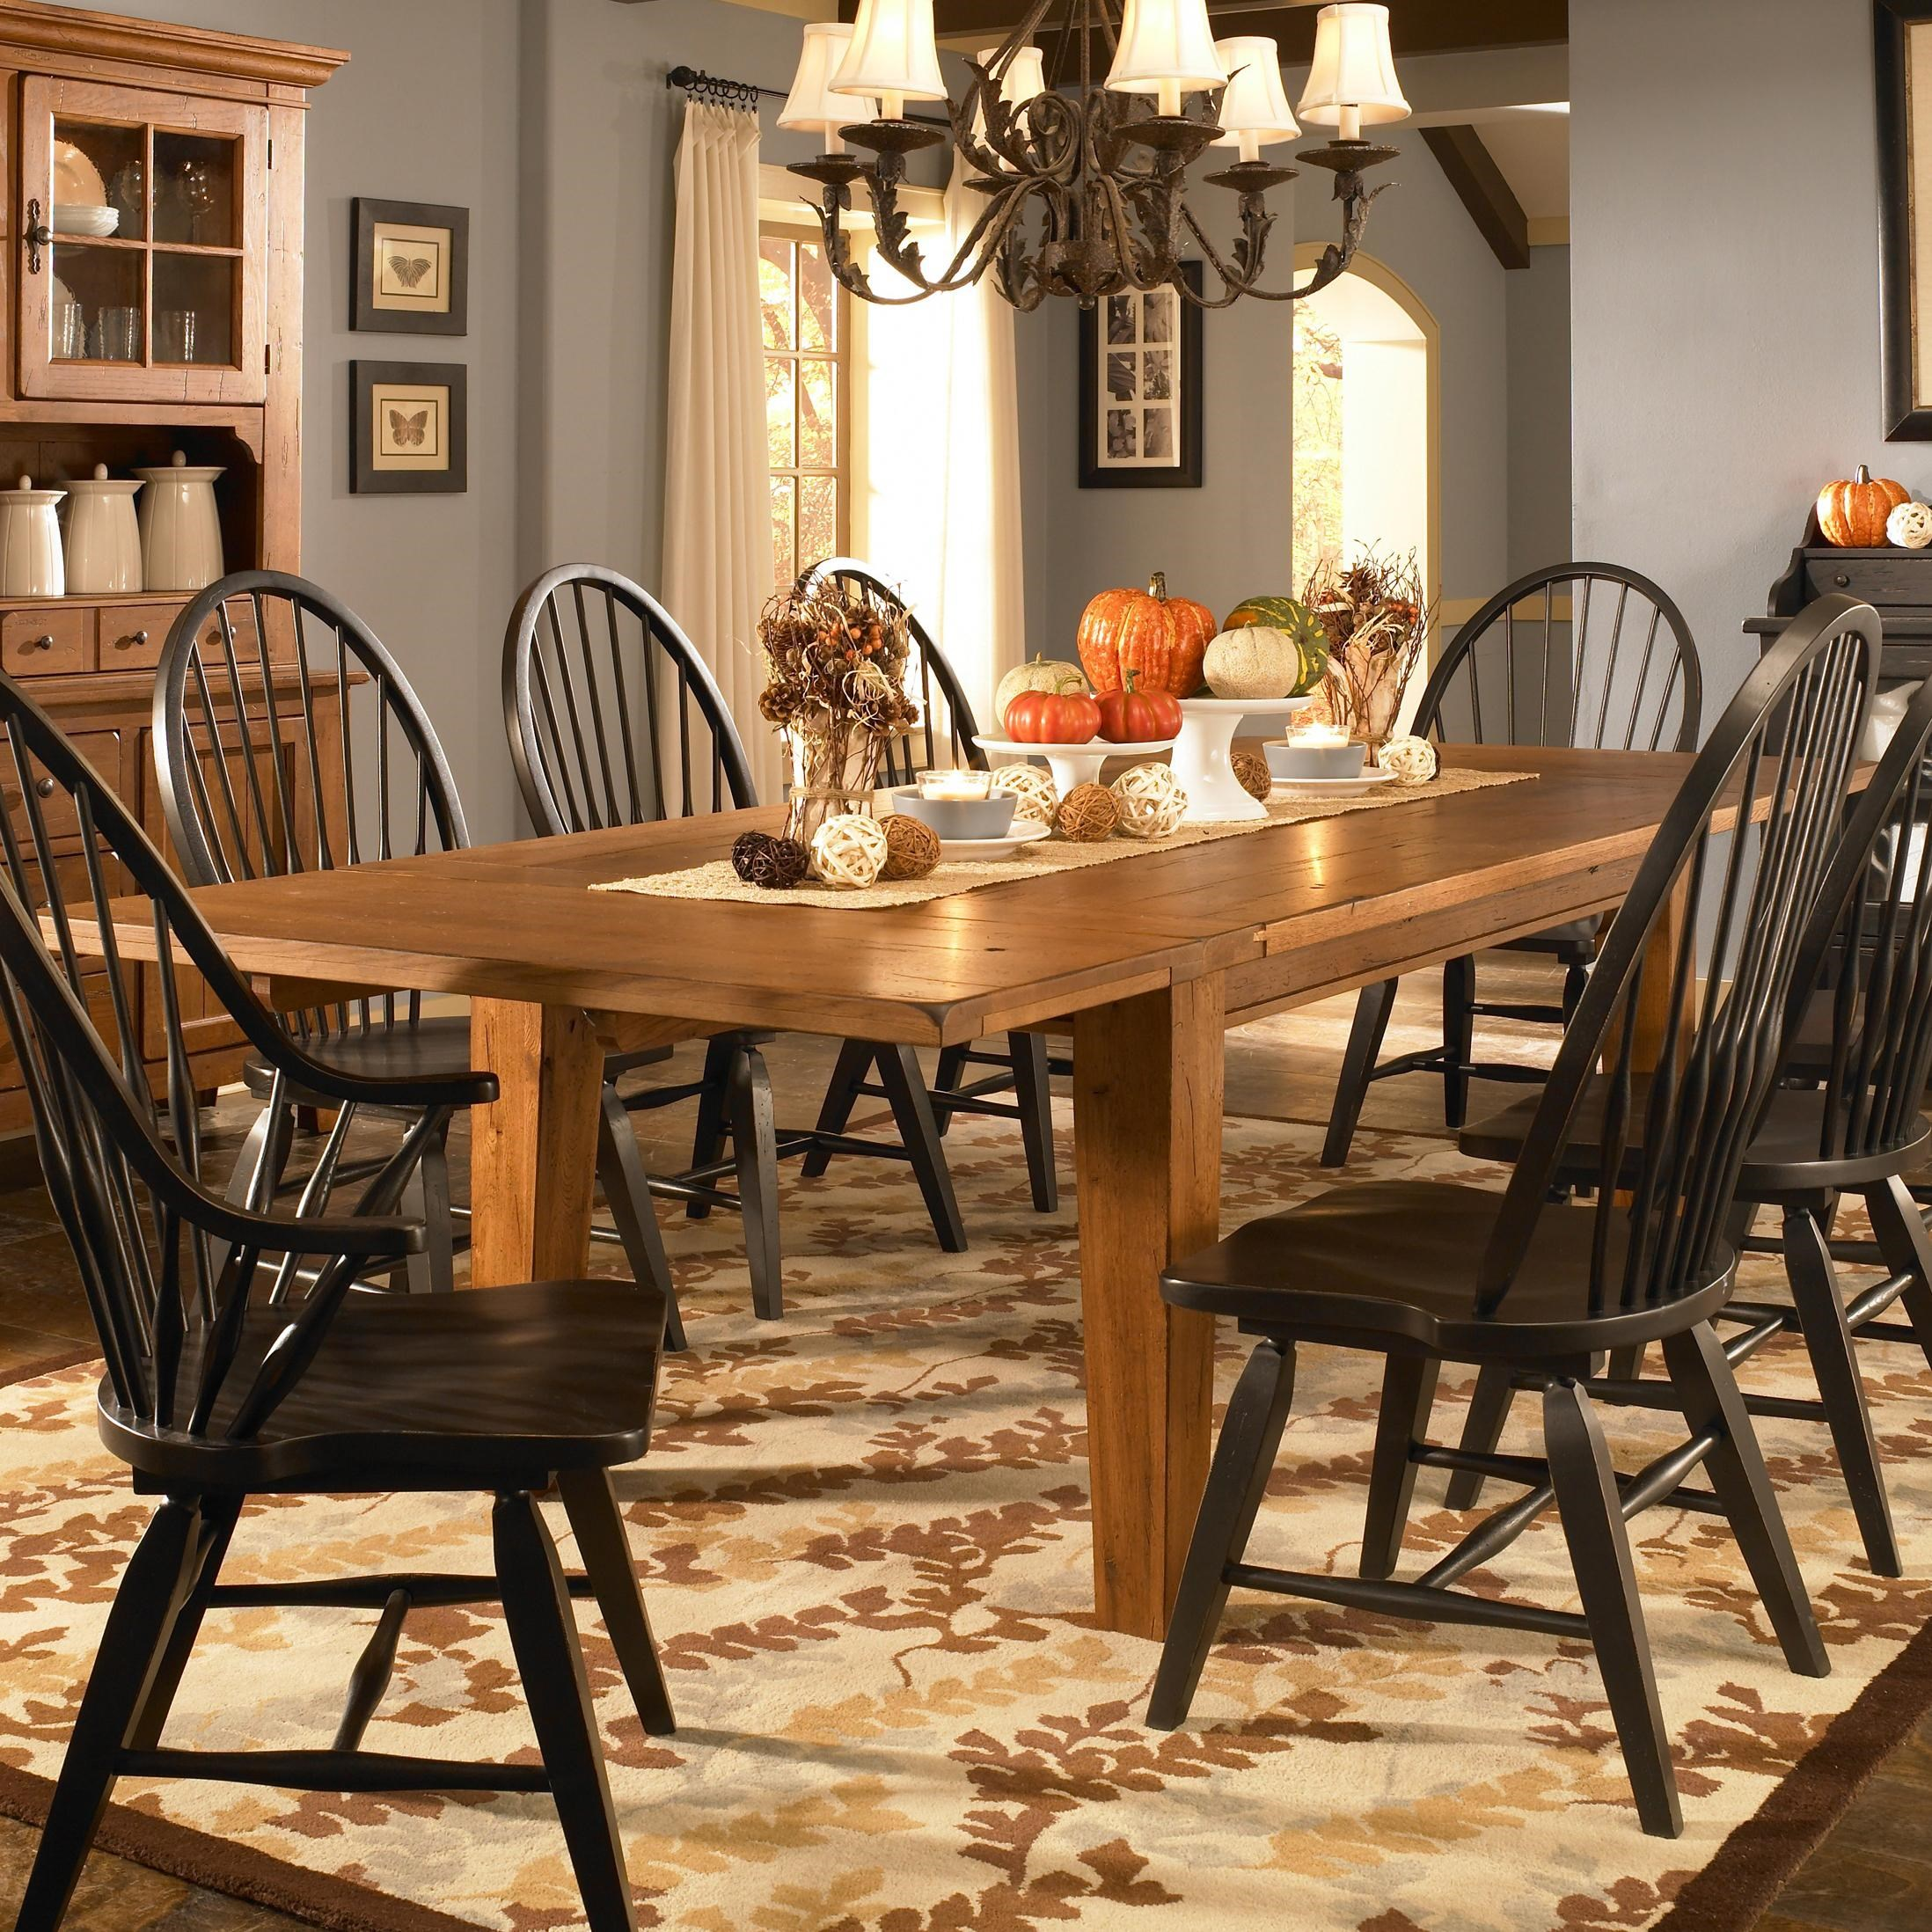 Broyhill Furniture Attic Heirlooms Leg Dining Table With Leaves & Broyhill Furniture Attic Heirlooms Leg Dining Table With Leaves ...